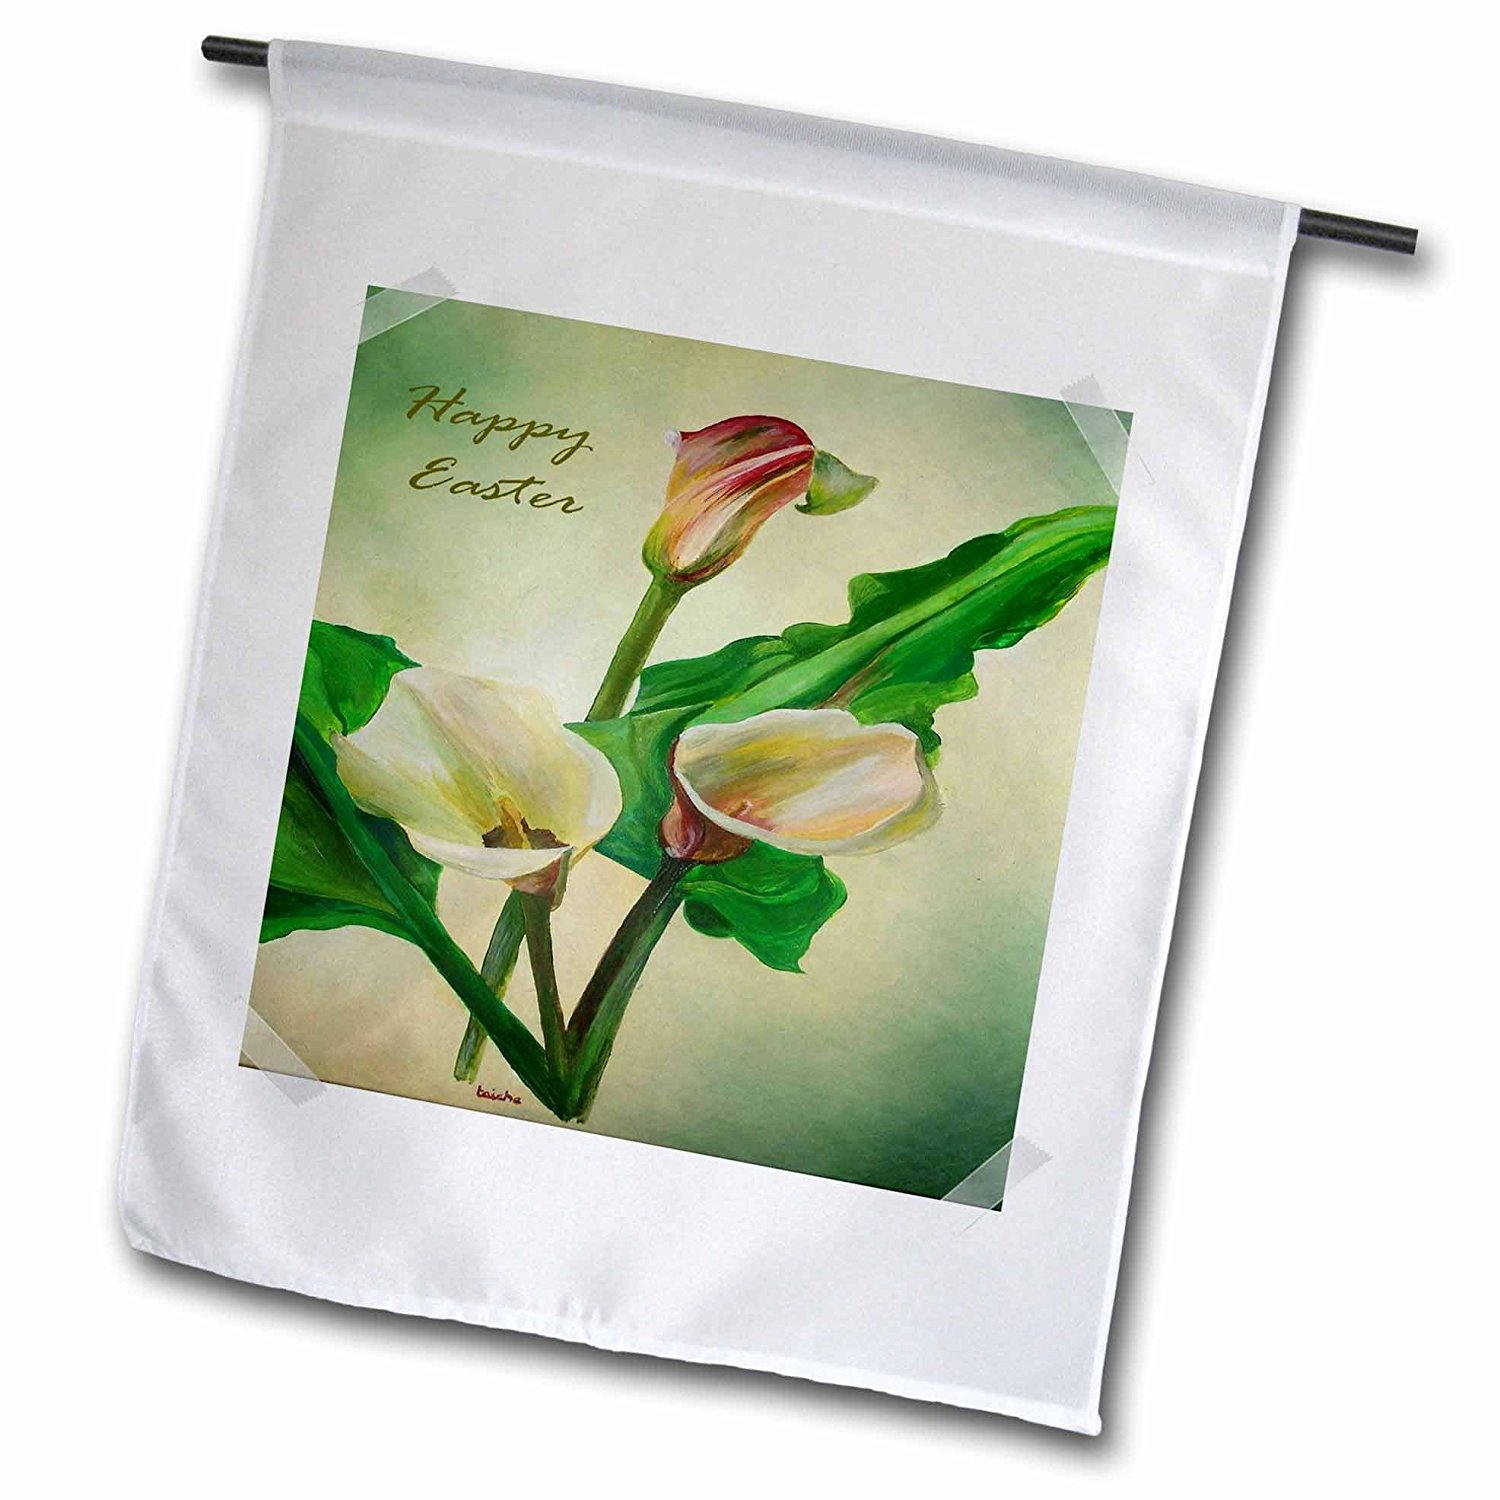 Buy 3drose Fl494171 Happy Easter Calla Lily Easter Flower Garden